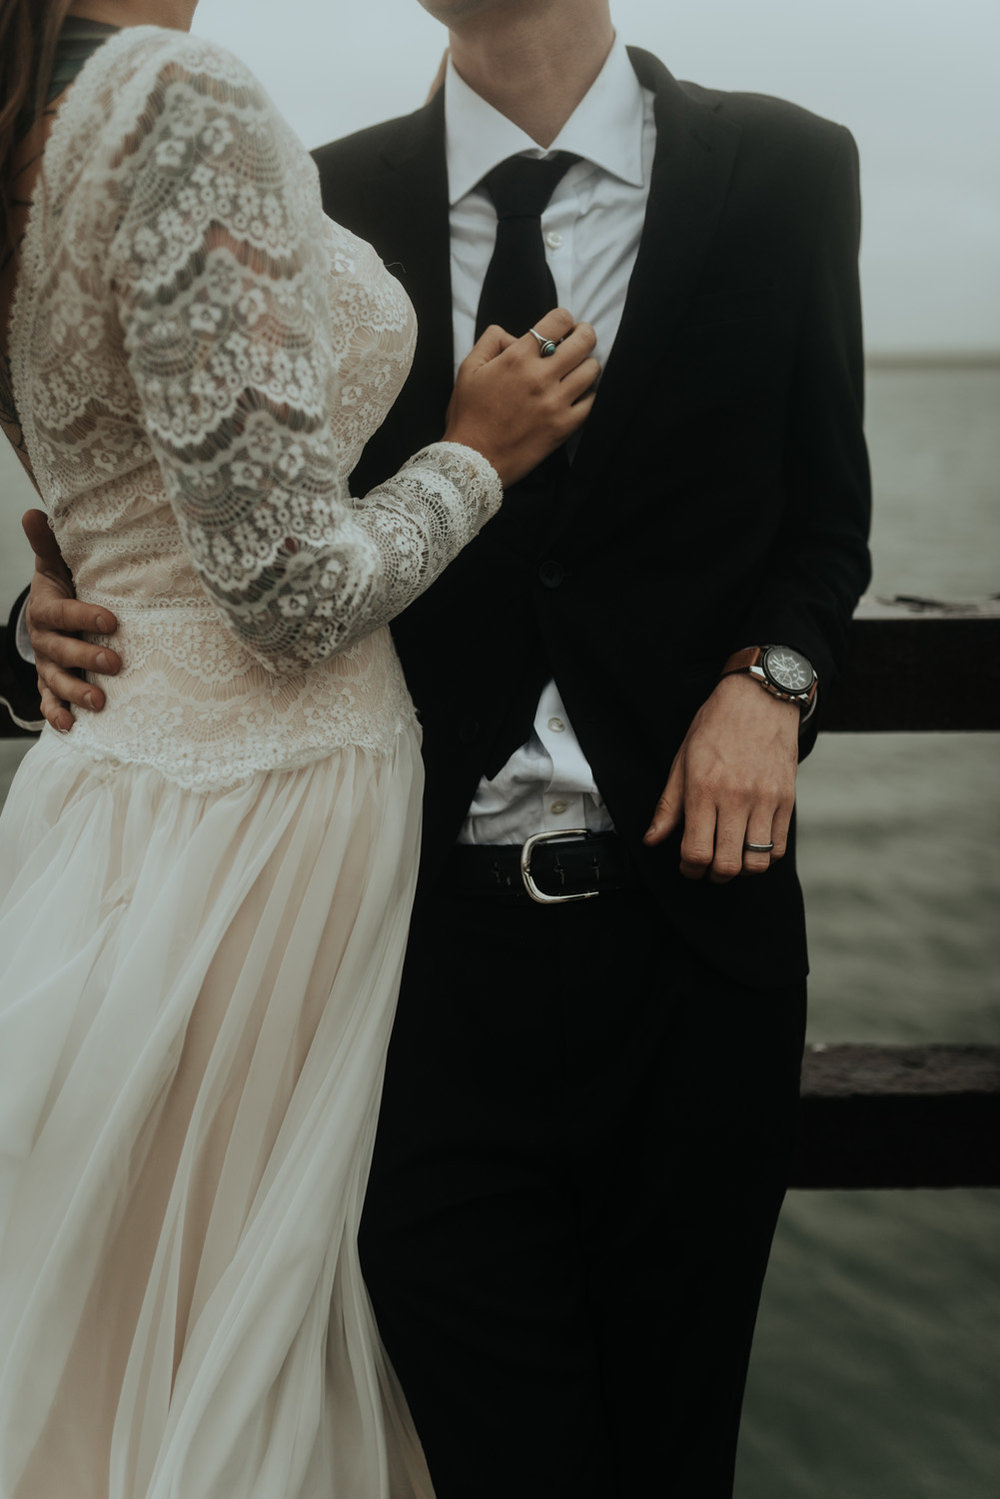 kylewillisphoto_kyle_Willis_Photography_liz_gibbs_brigantine_beach_atlantic_city_wedding_philadelphia_jersey_shore_new_nyc_engagement_delaware_engaged_married_rainy_photos_ac_boho46.jpg